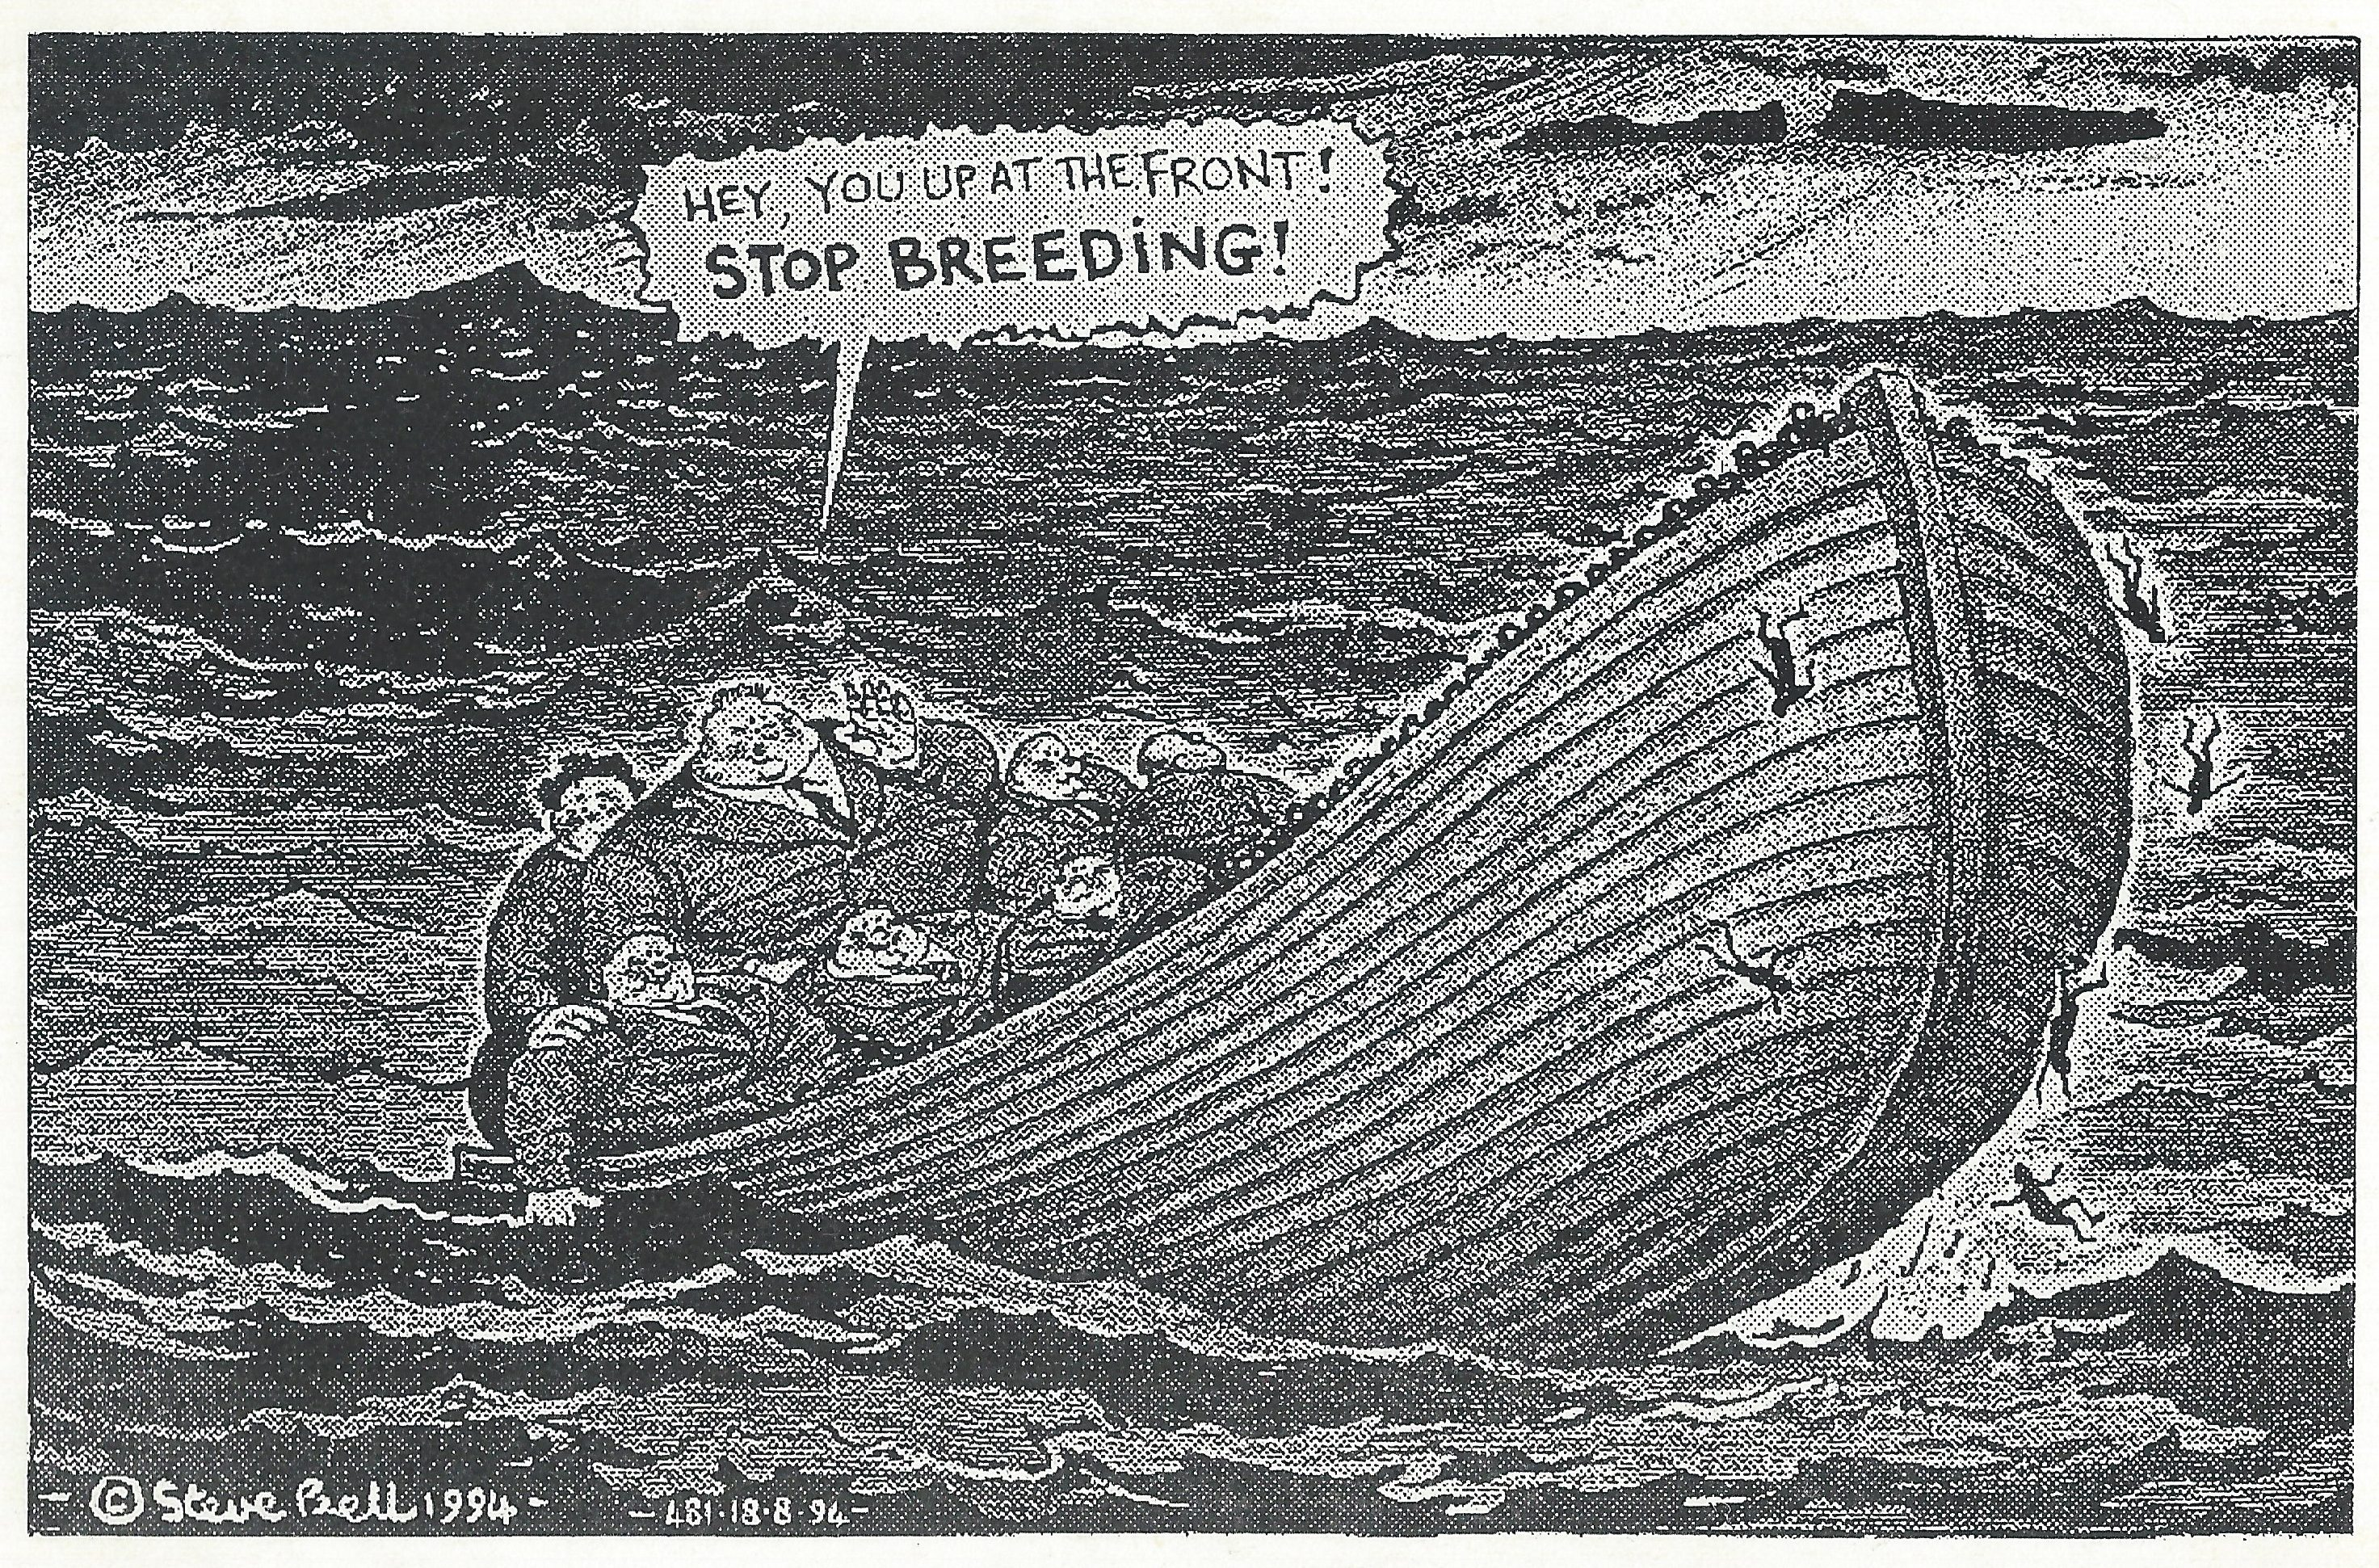 Steve Bell's political cartoon (1994) illustrating how attitudes to population growth endure through the years.